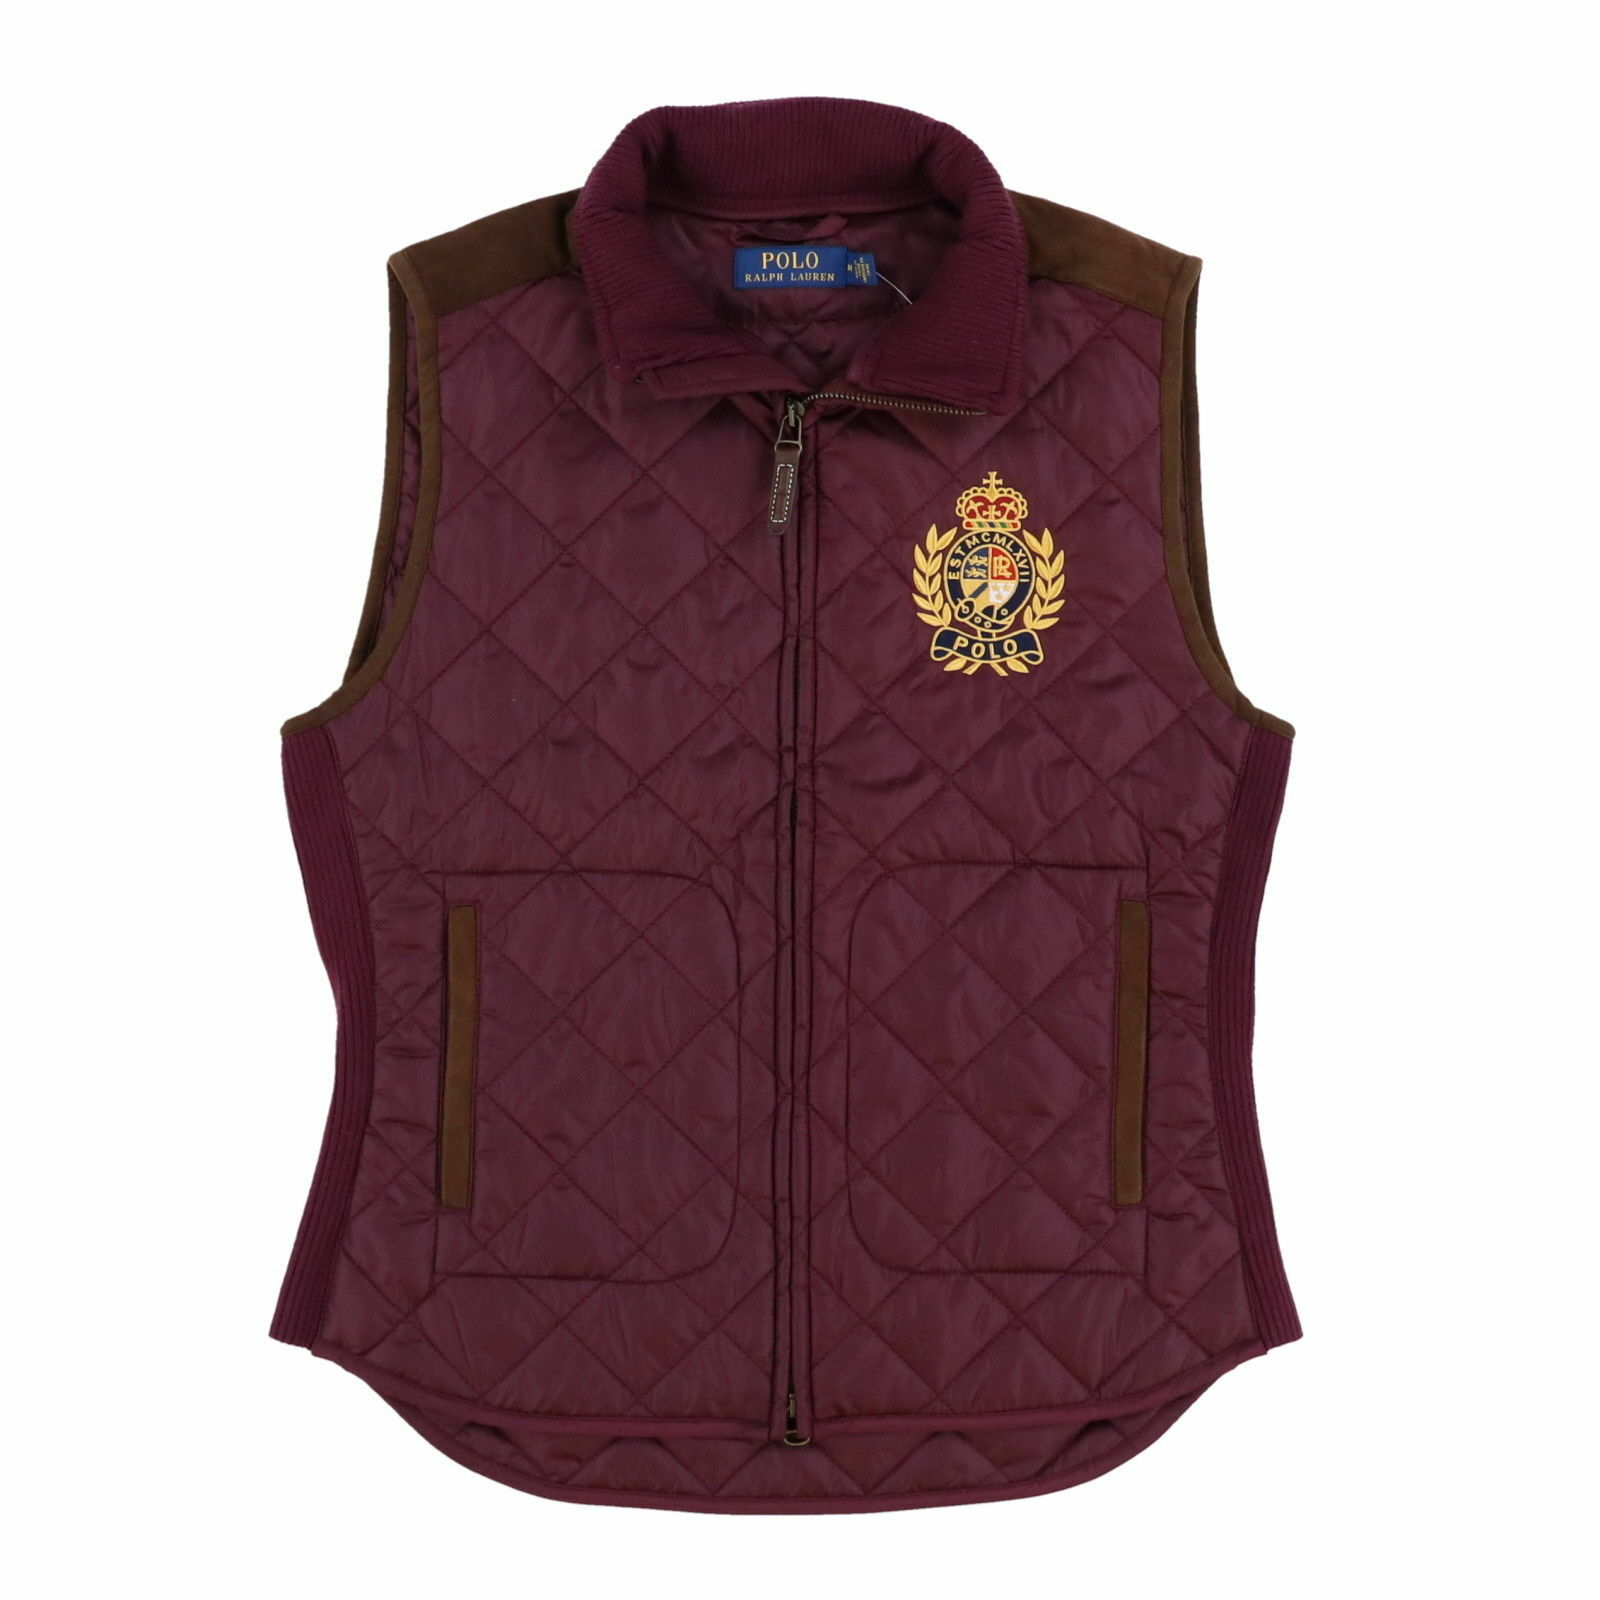 NWT  Ralph Lauren Women's Polo Crest Quilted Puffer Vest in Burgundy